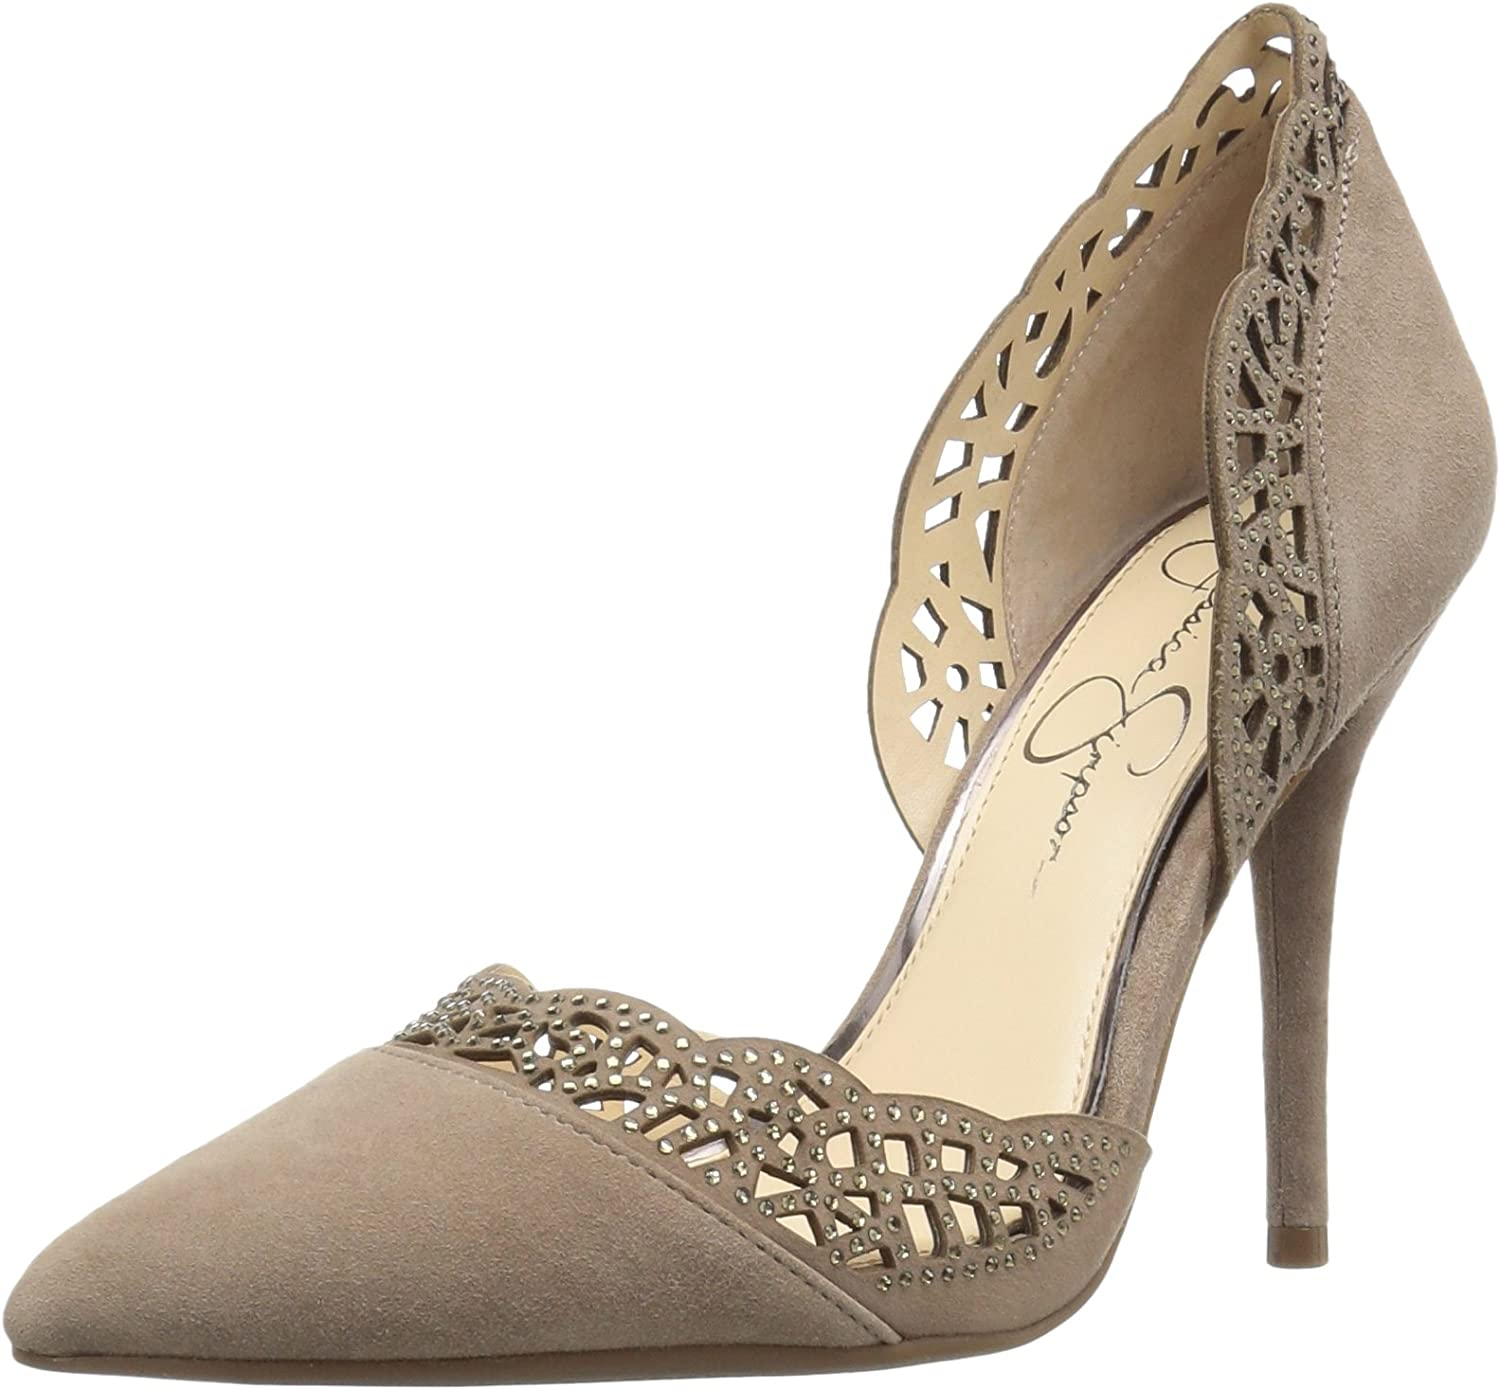 Jessica Simpson Women's Teriann Dress Pump